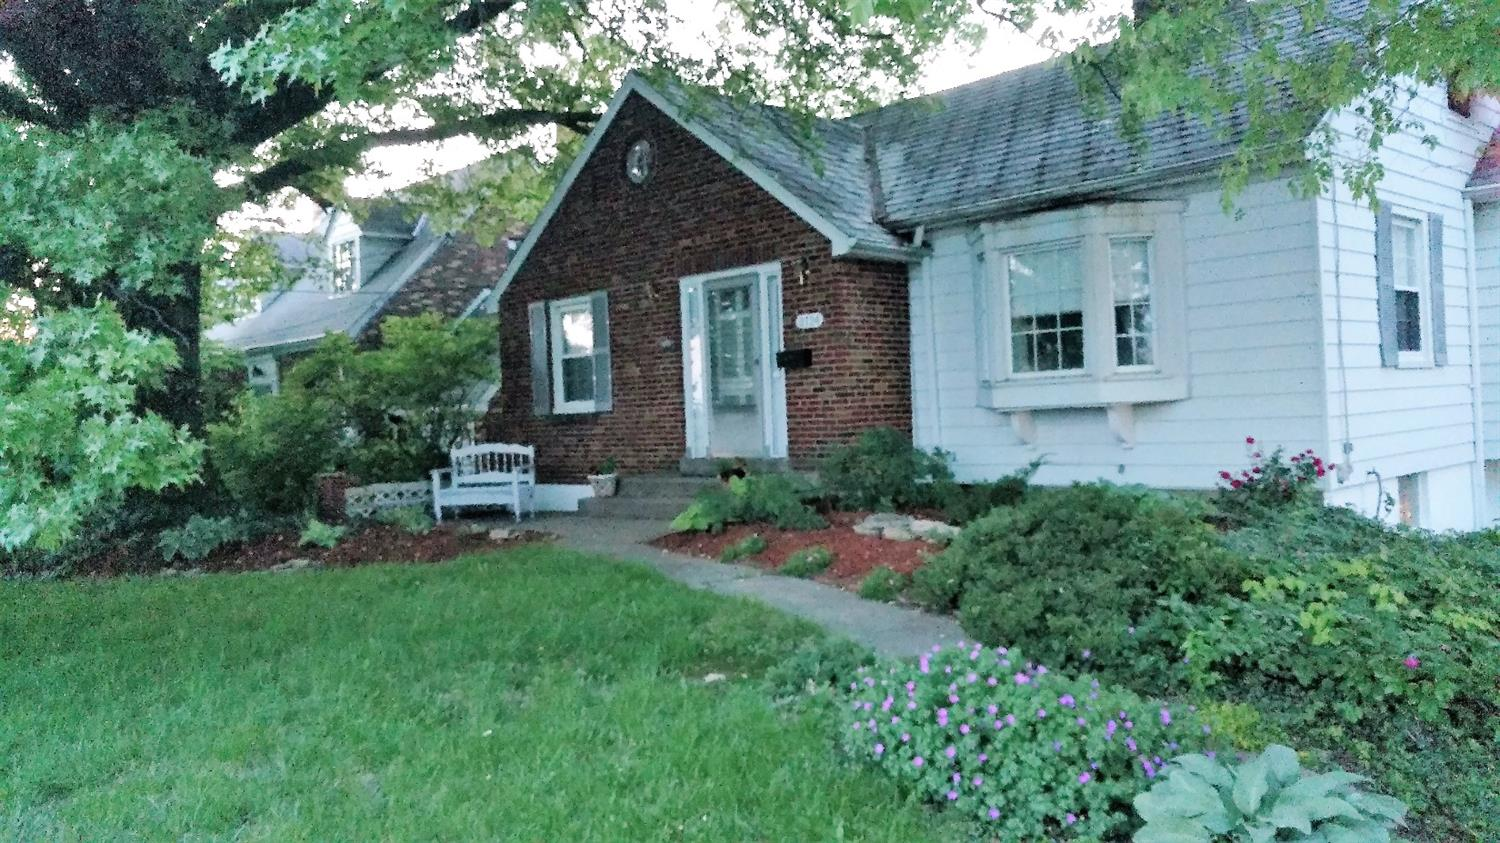 3124 Queen City Ave Westwood Oh 45238 Listing Details